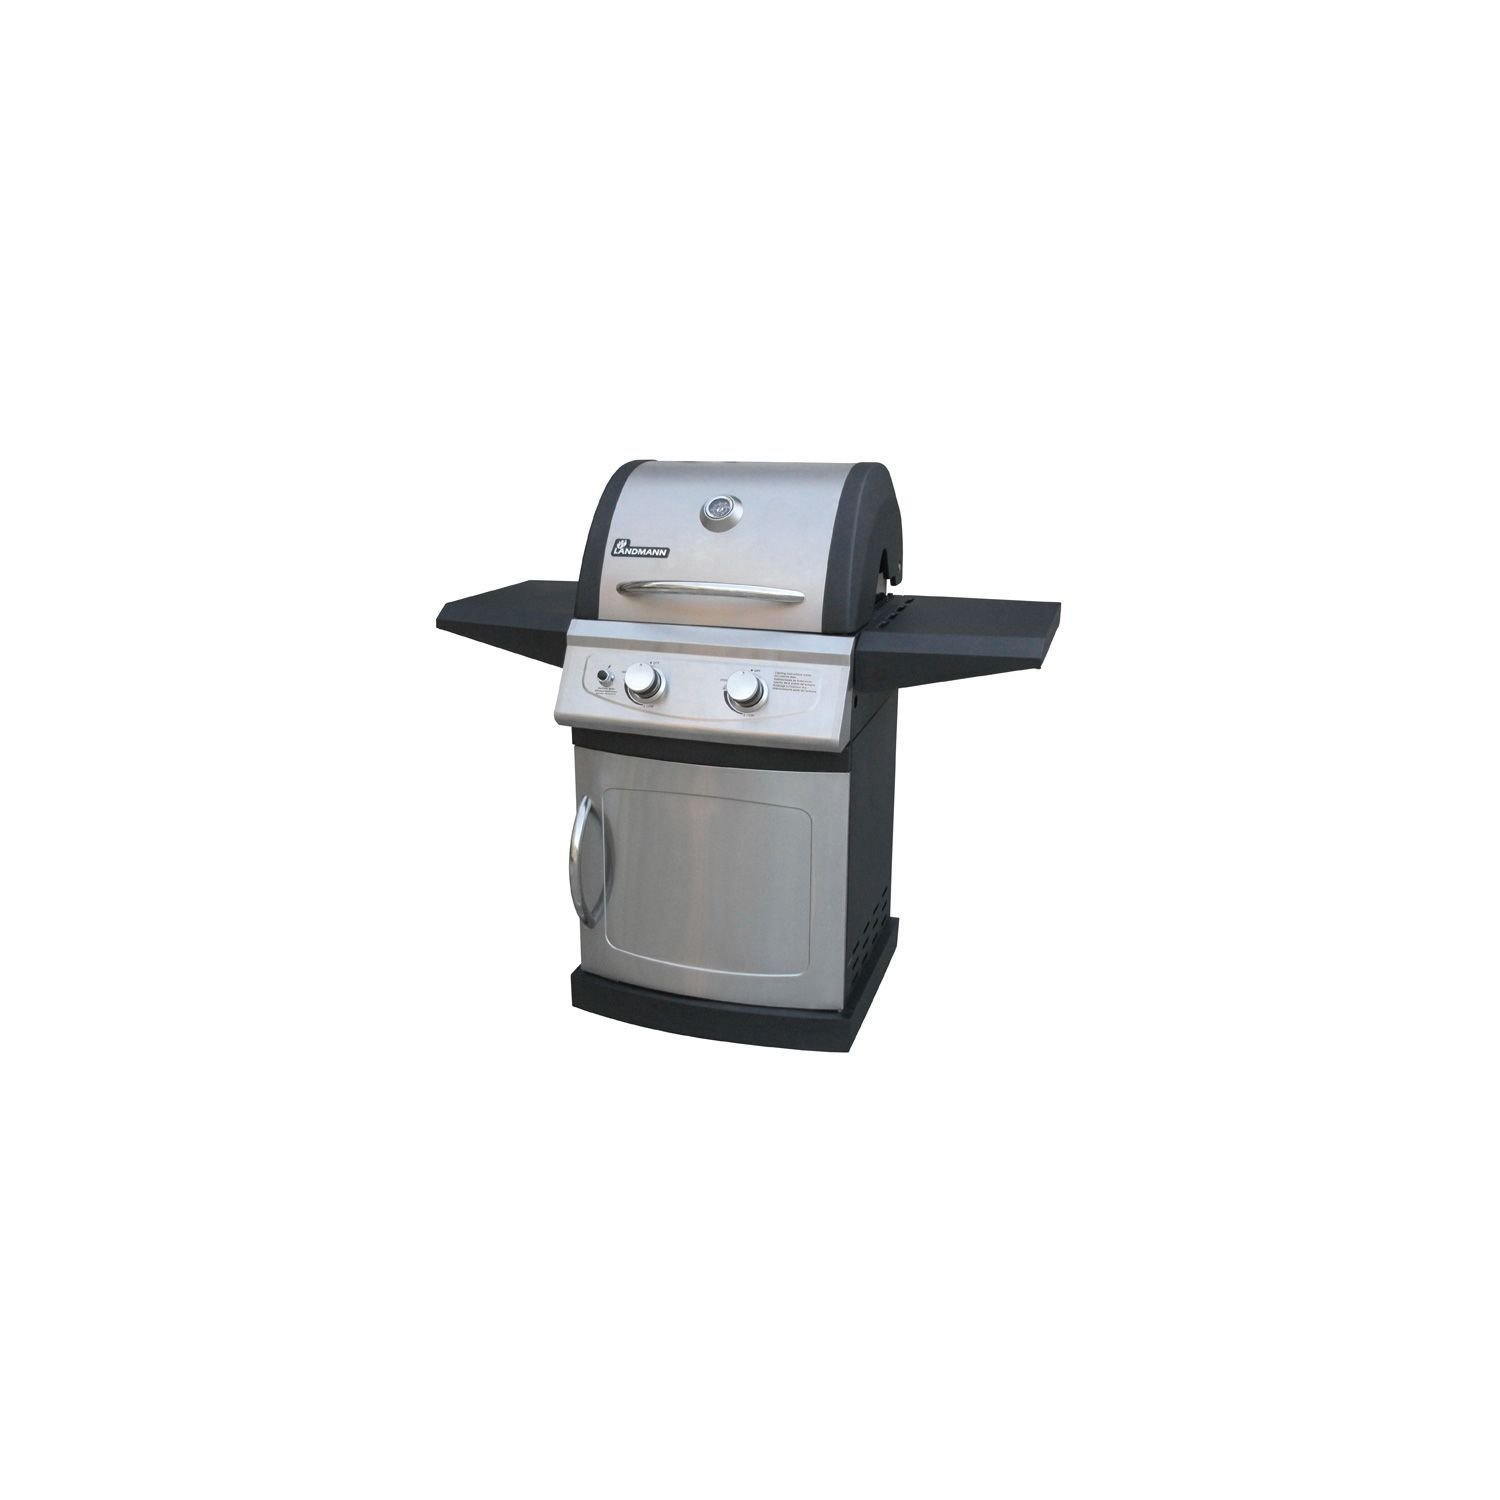 Landmann Falcon Series LP Gas Grill 2 Burner Black and Stainless Steel